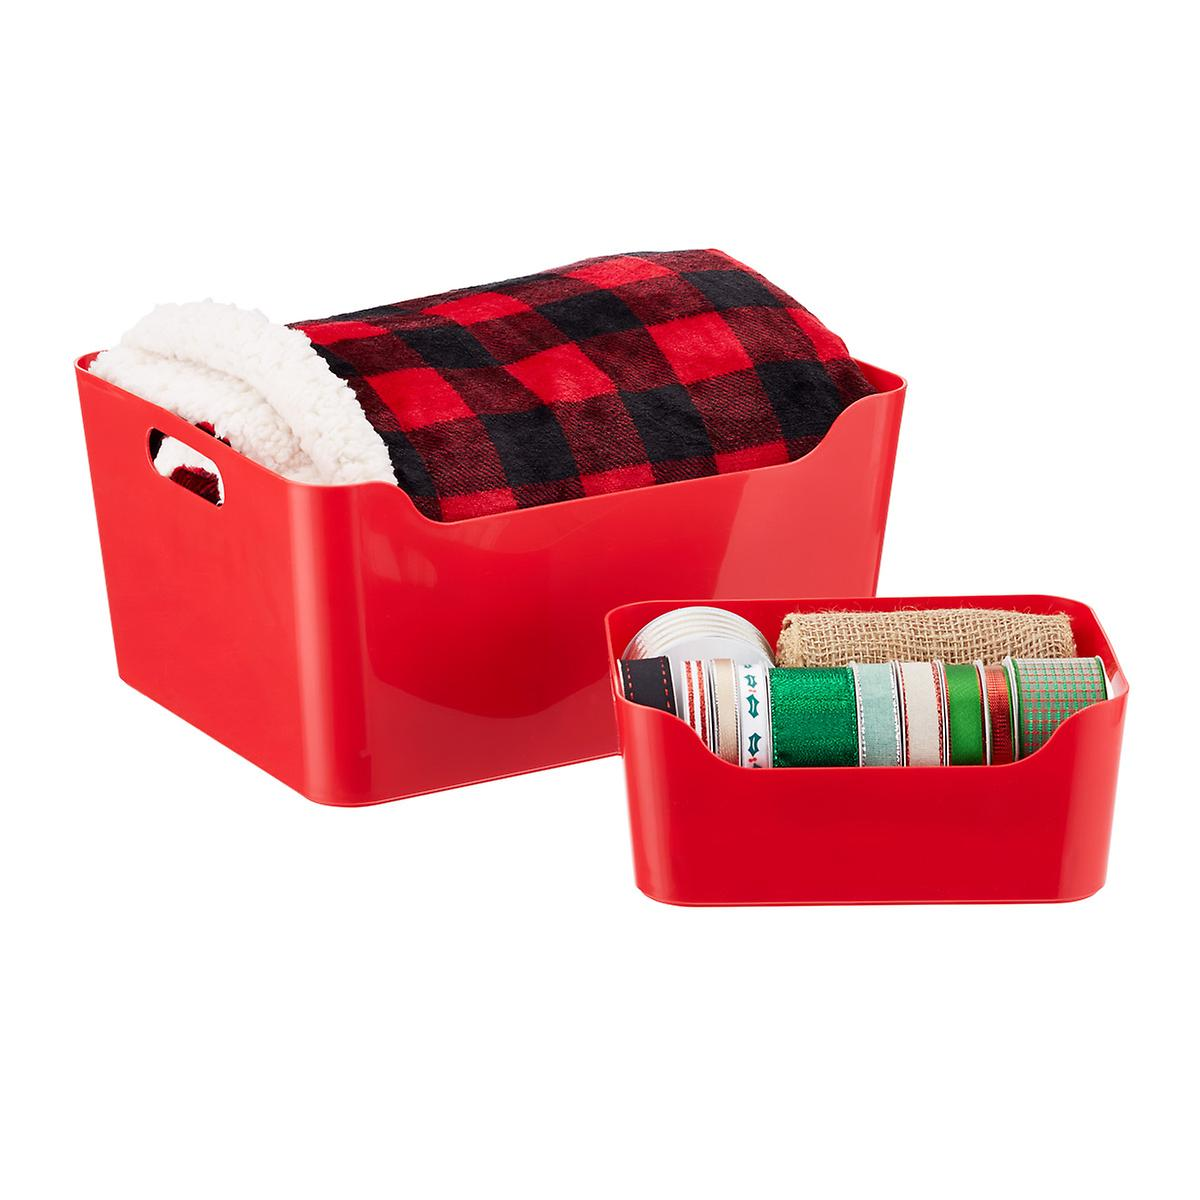 Red Plastic Storage Bins with Handles